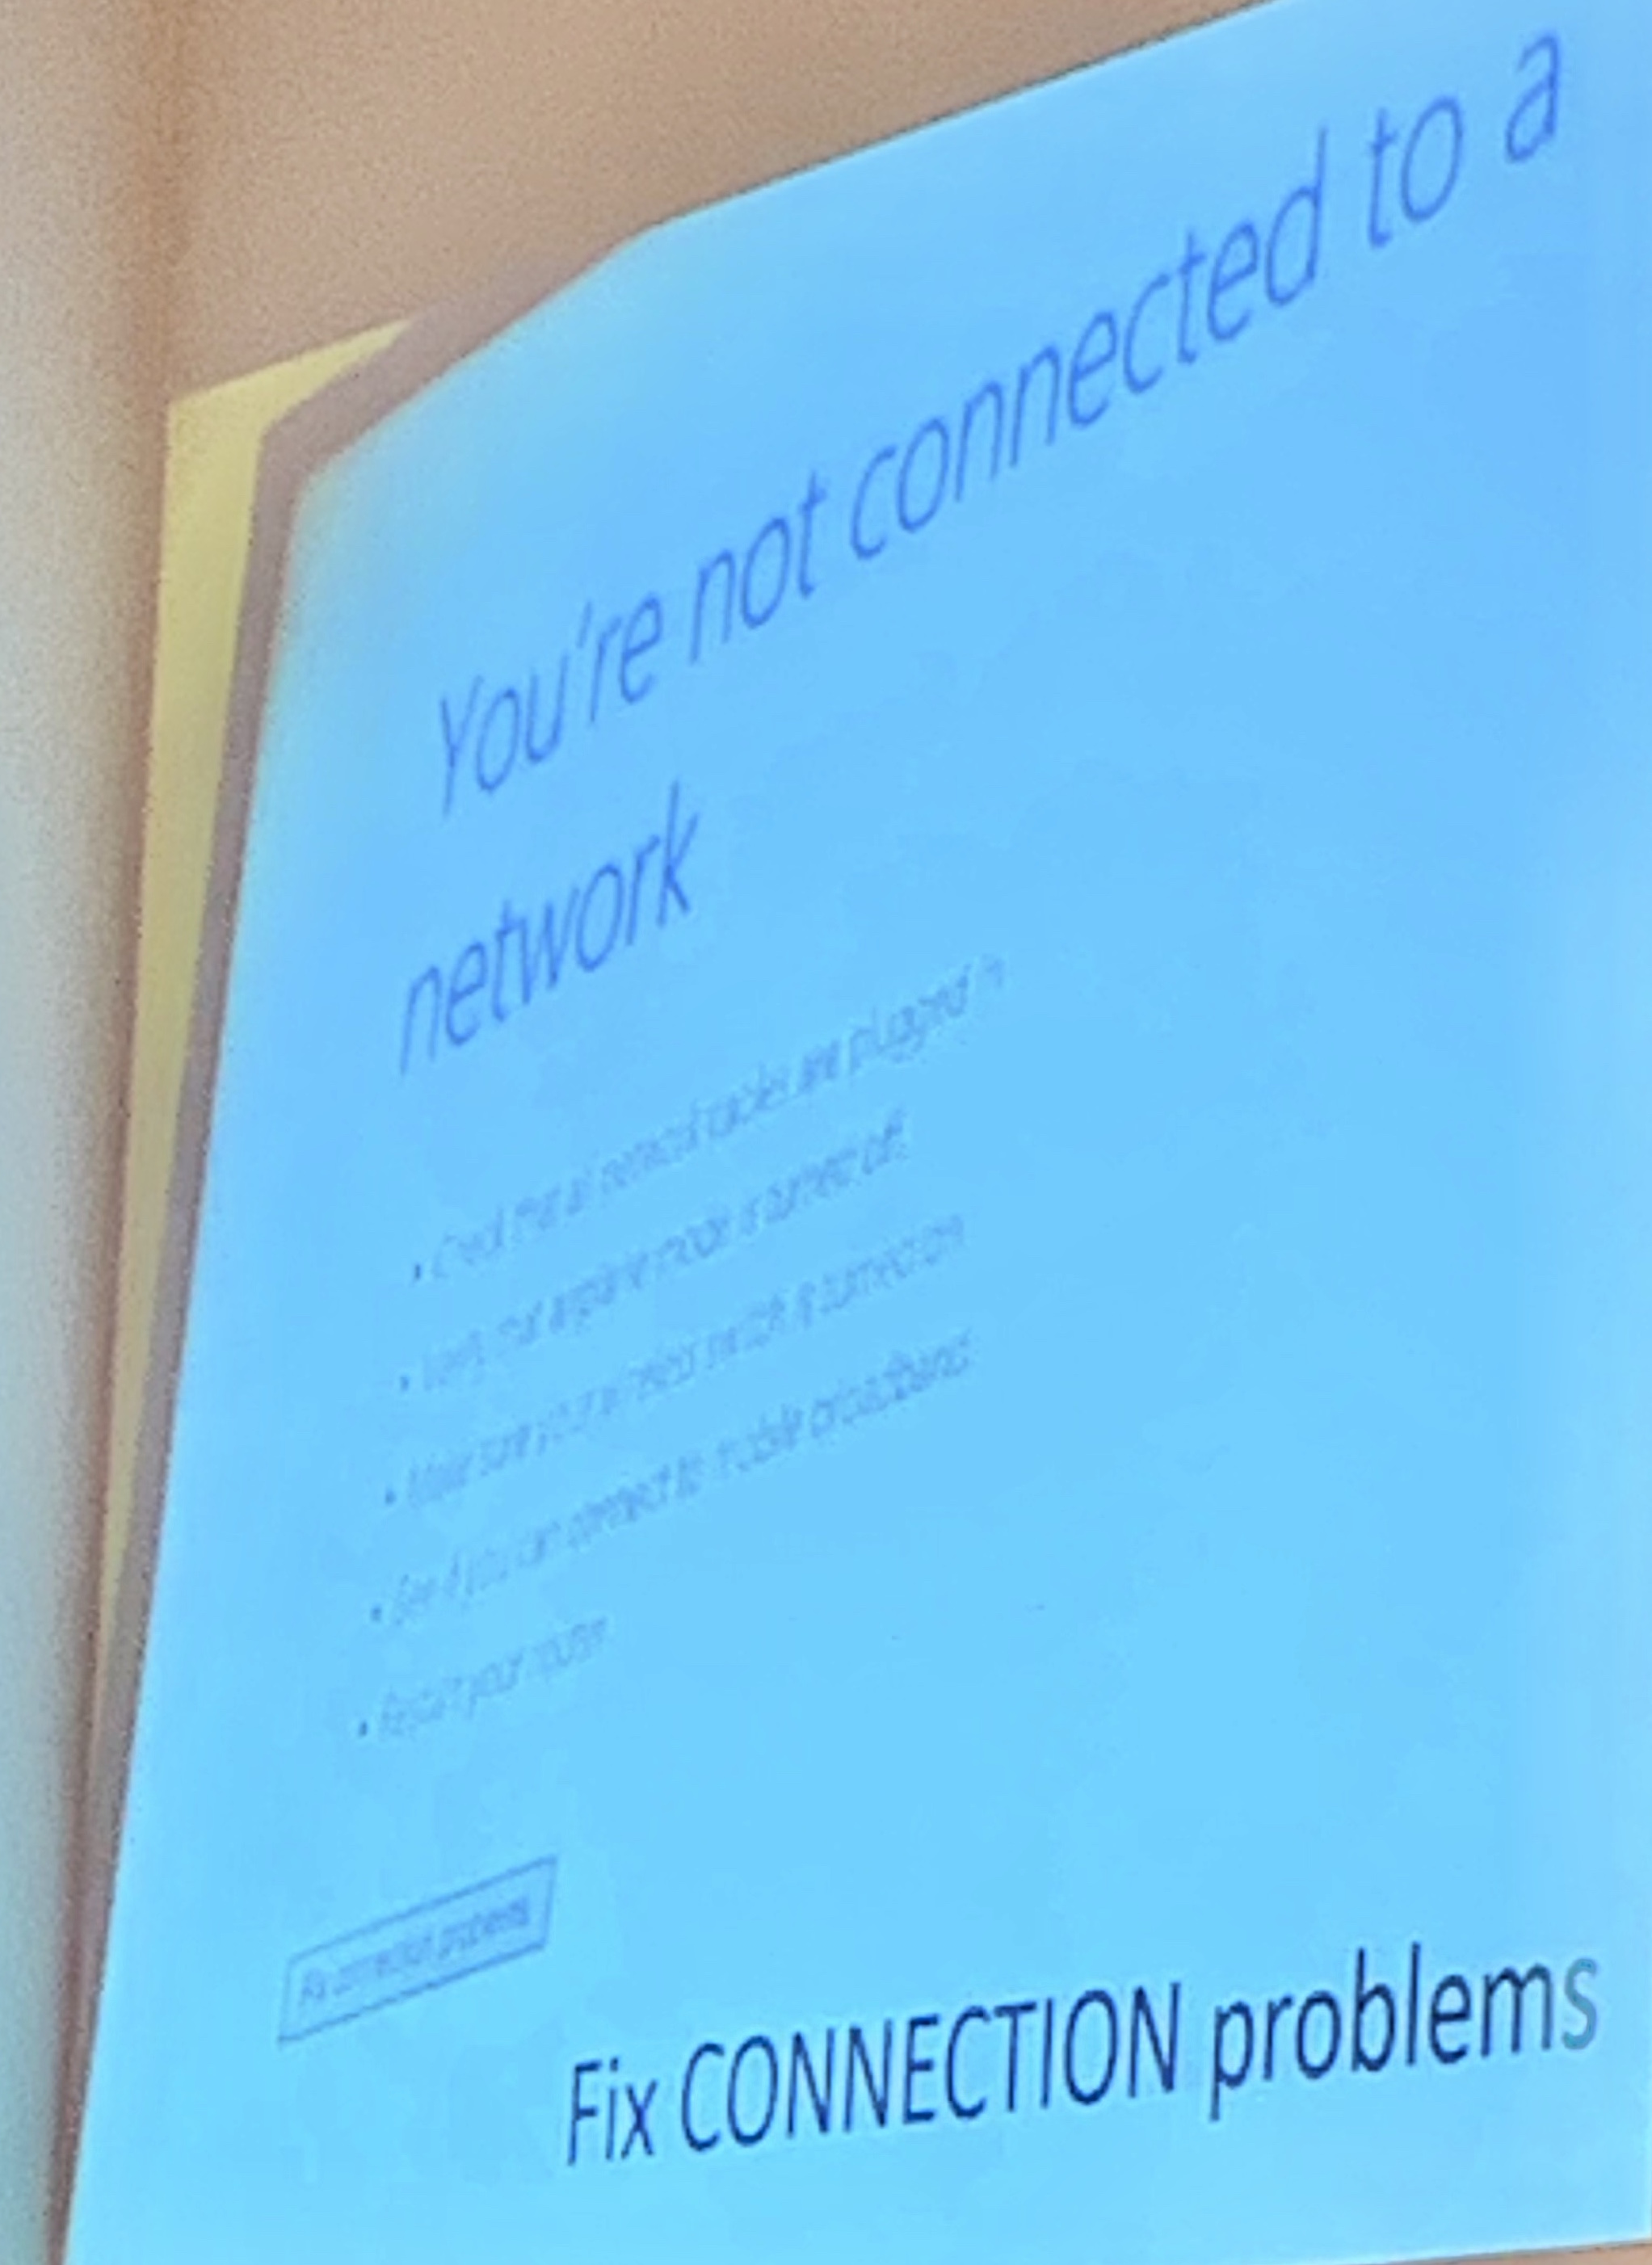 network connections copy